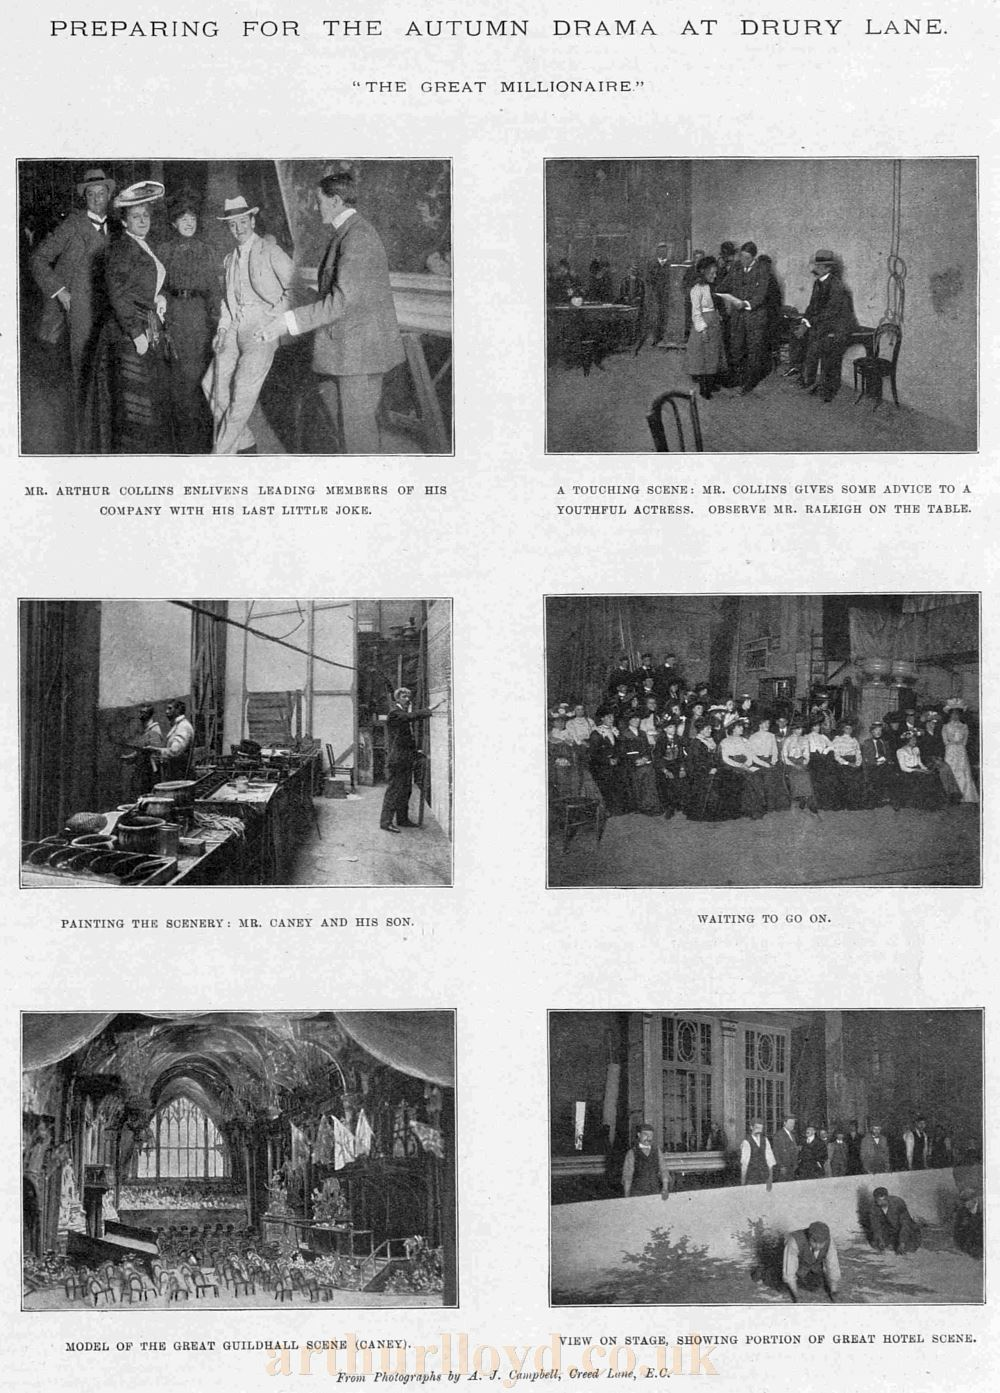 Preparing for the Autumn Drama at Drury Lane, the 1901 reopening production of 'The Great Millionaire' - From The Sketch, September 18th 1901.